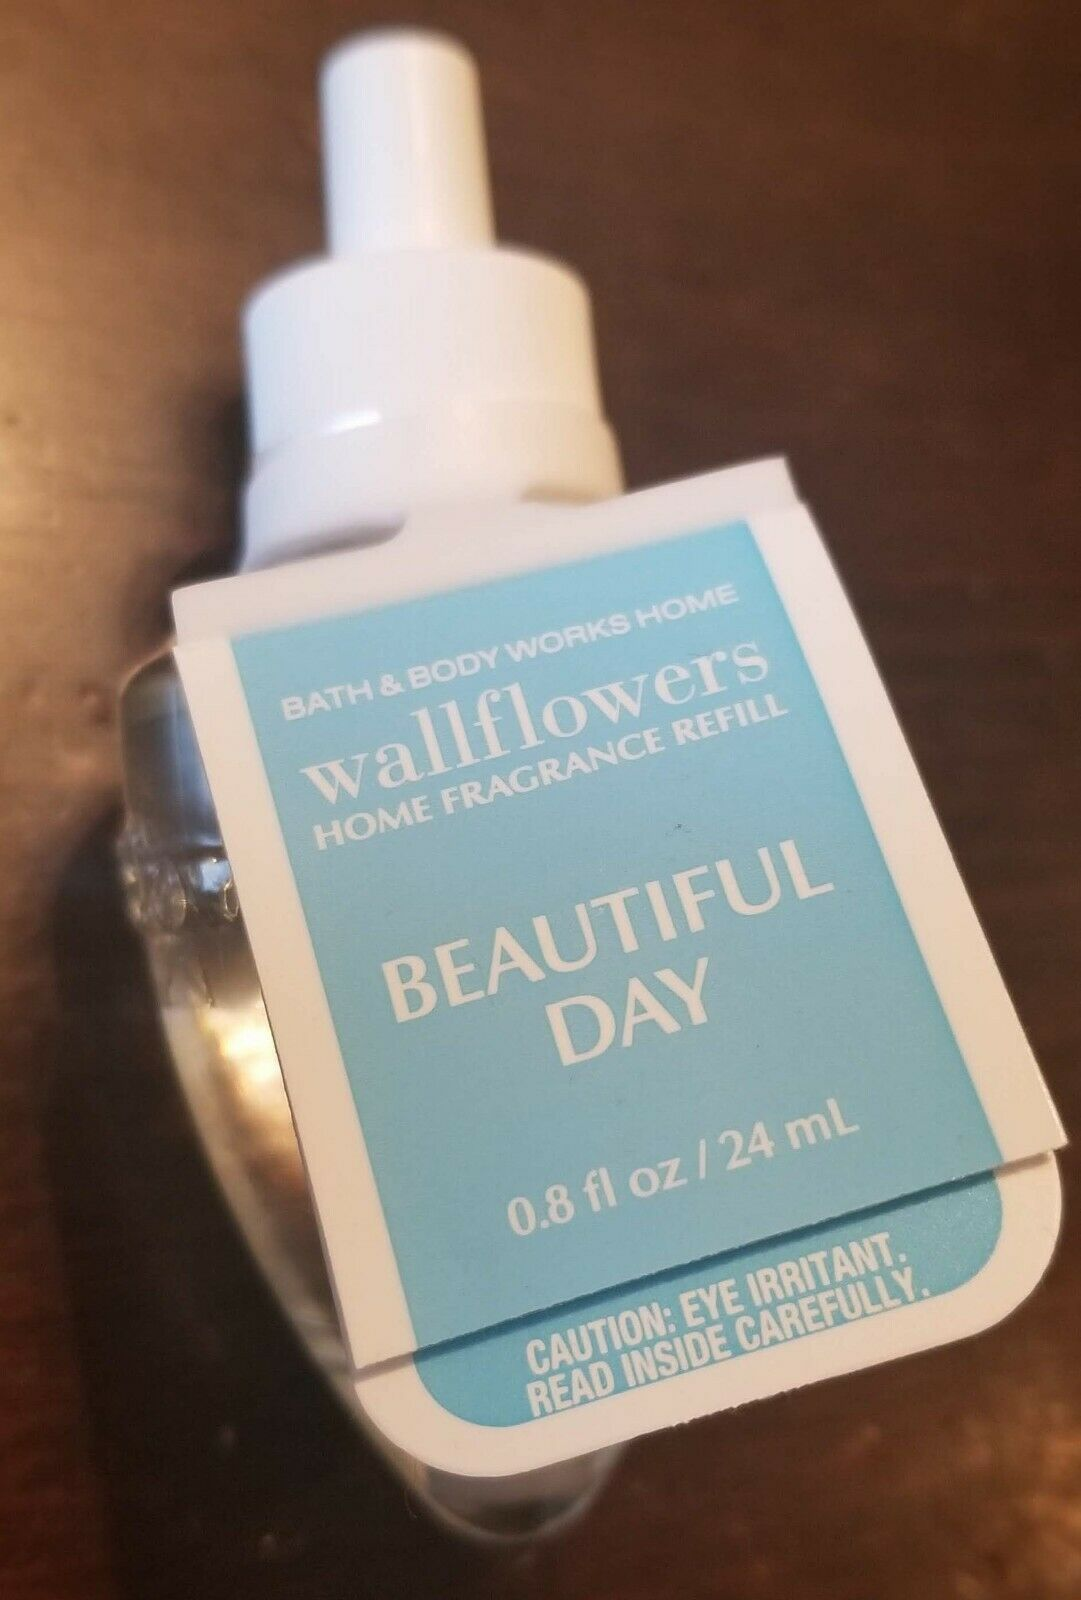 NEW Bath & Body Works Wallflowers BEAUTIFUL DAY Fragrance Refill Bulb